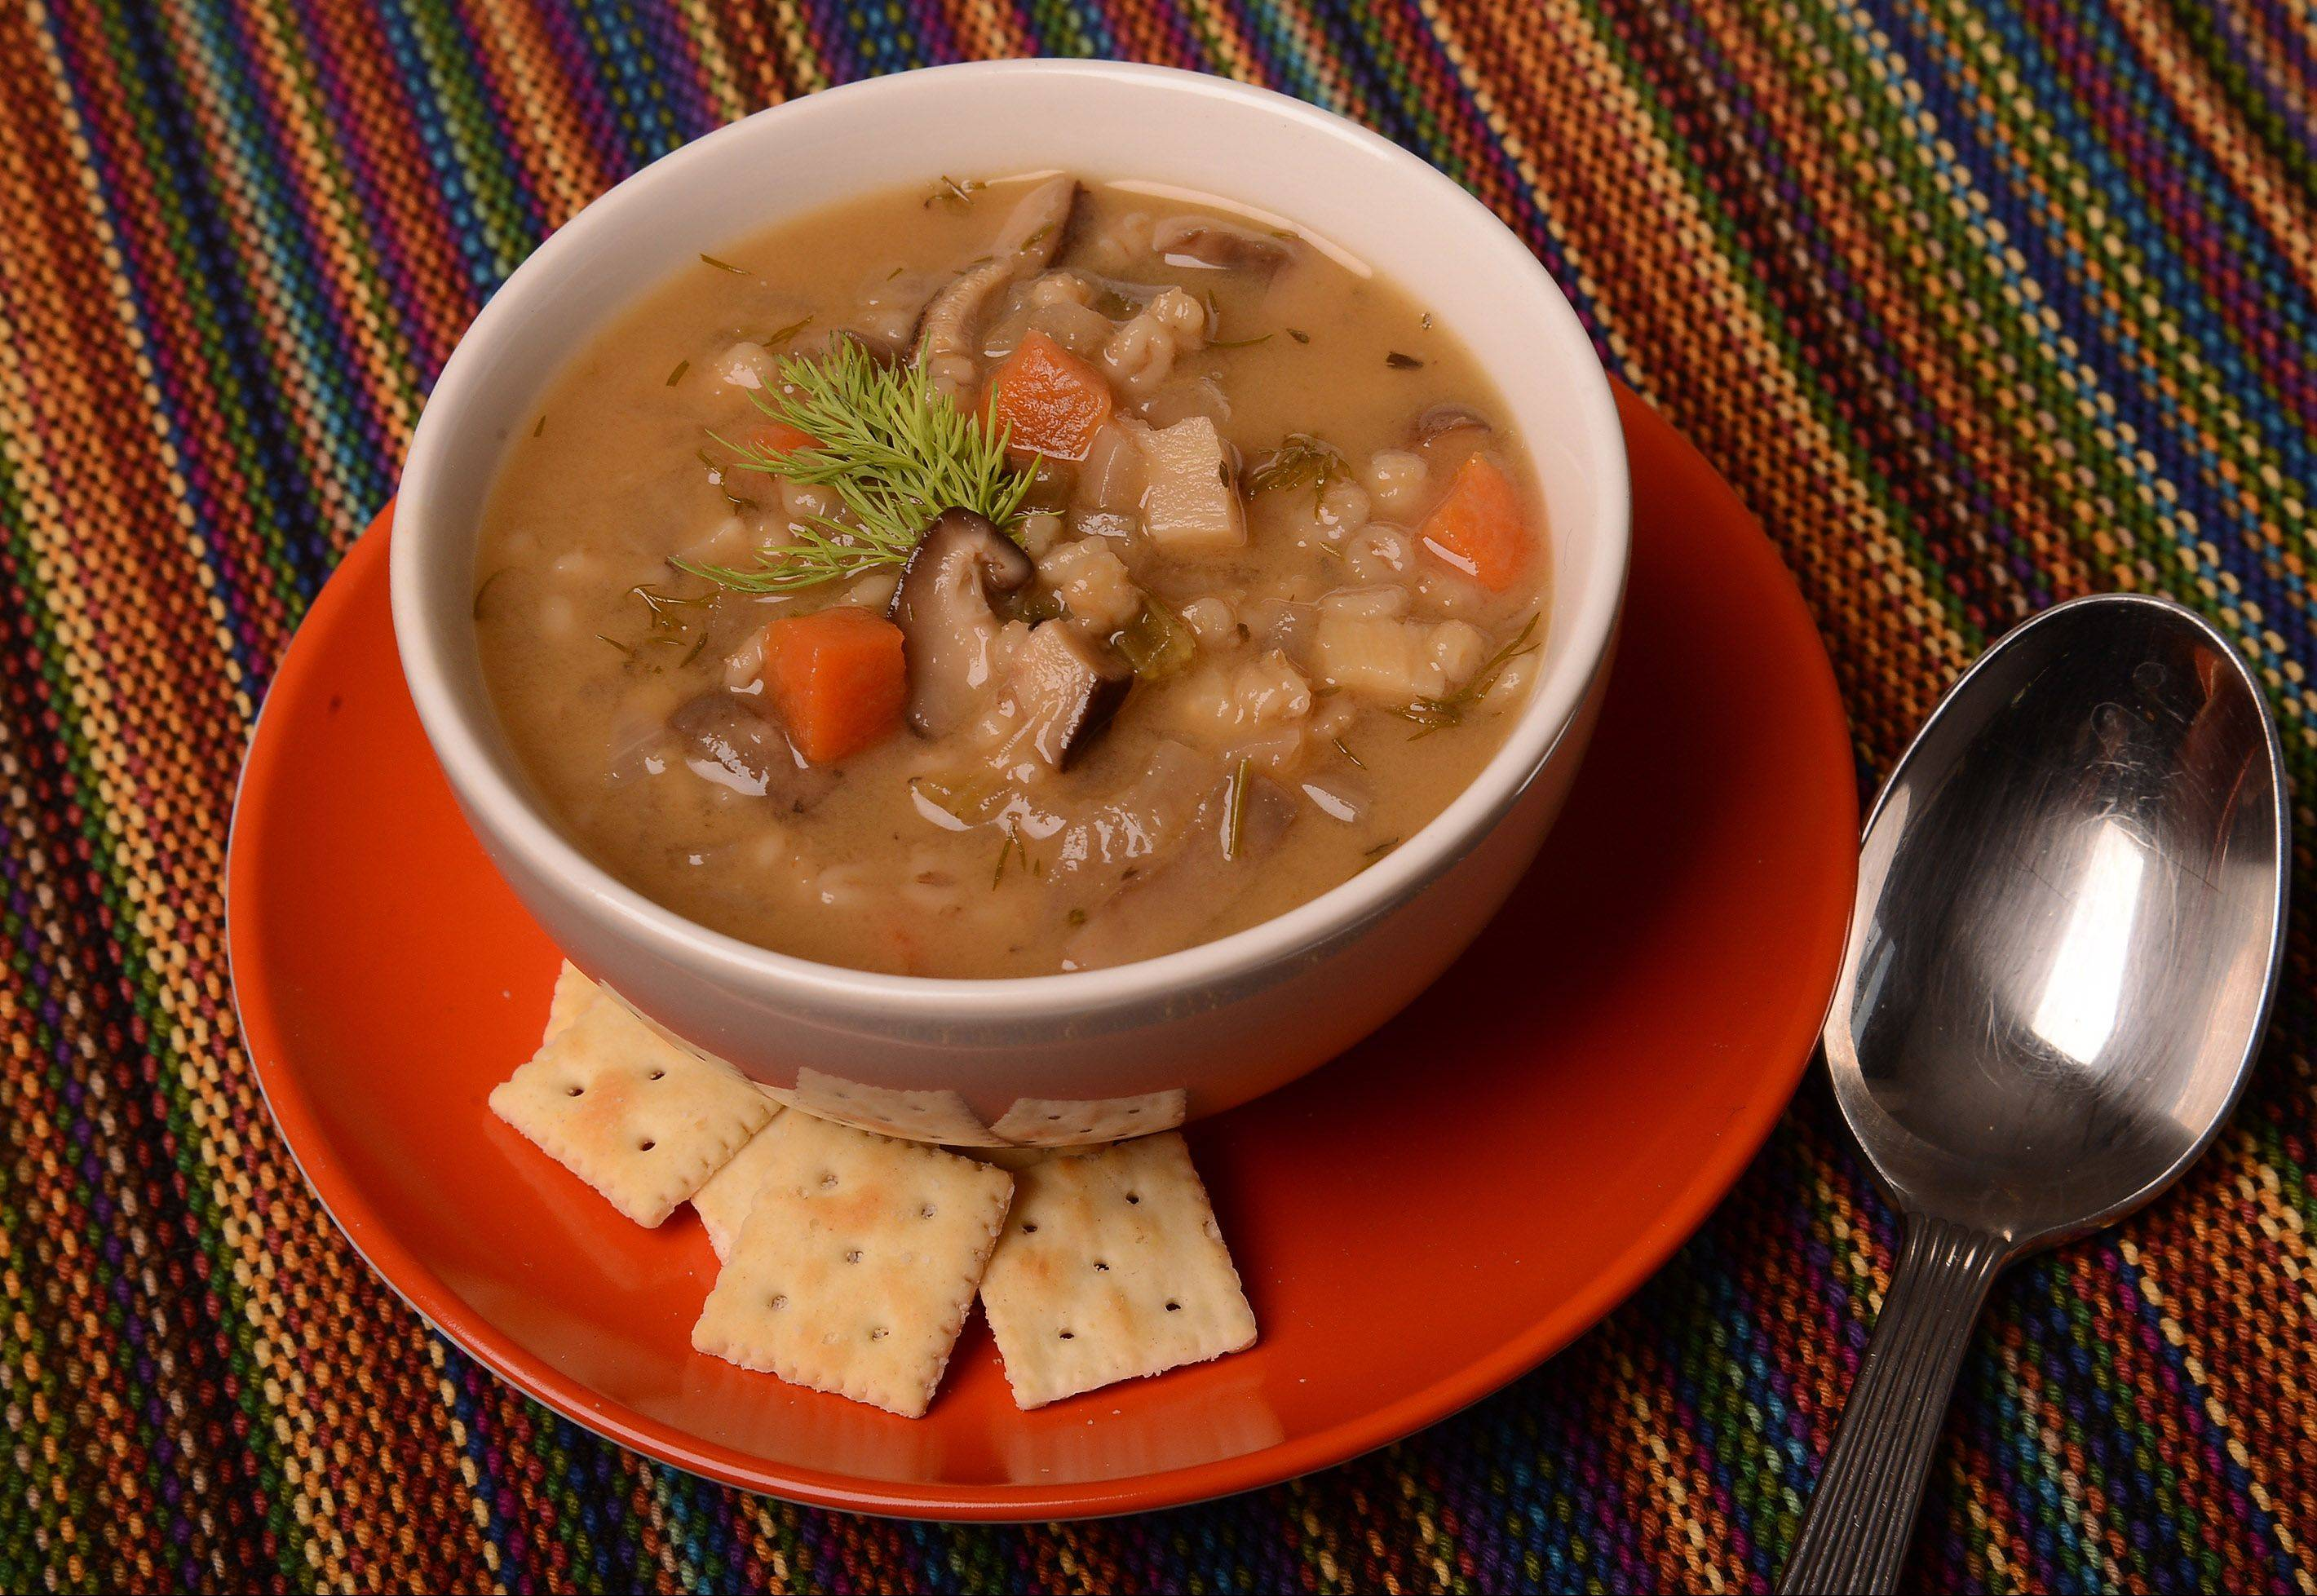 Soupalooza: Mushroom Barley Soup brings a flood of good memories